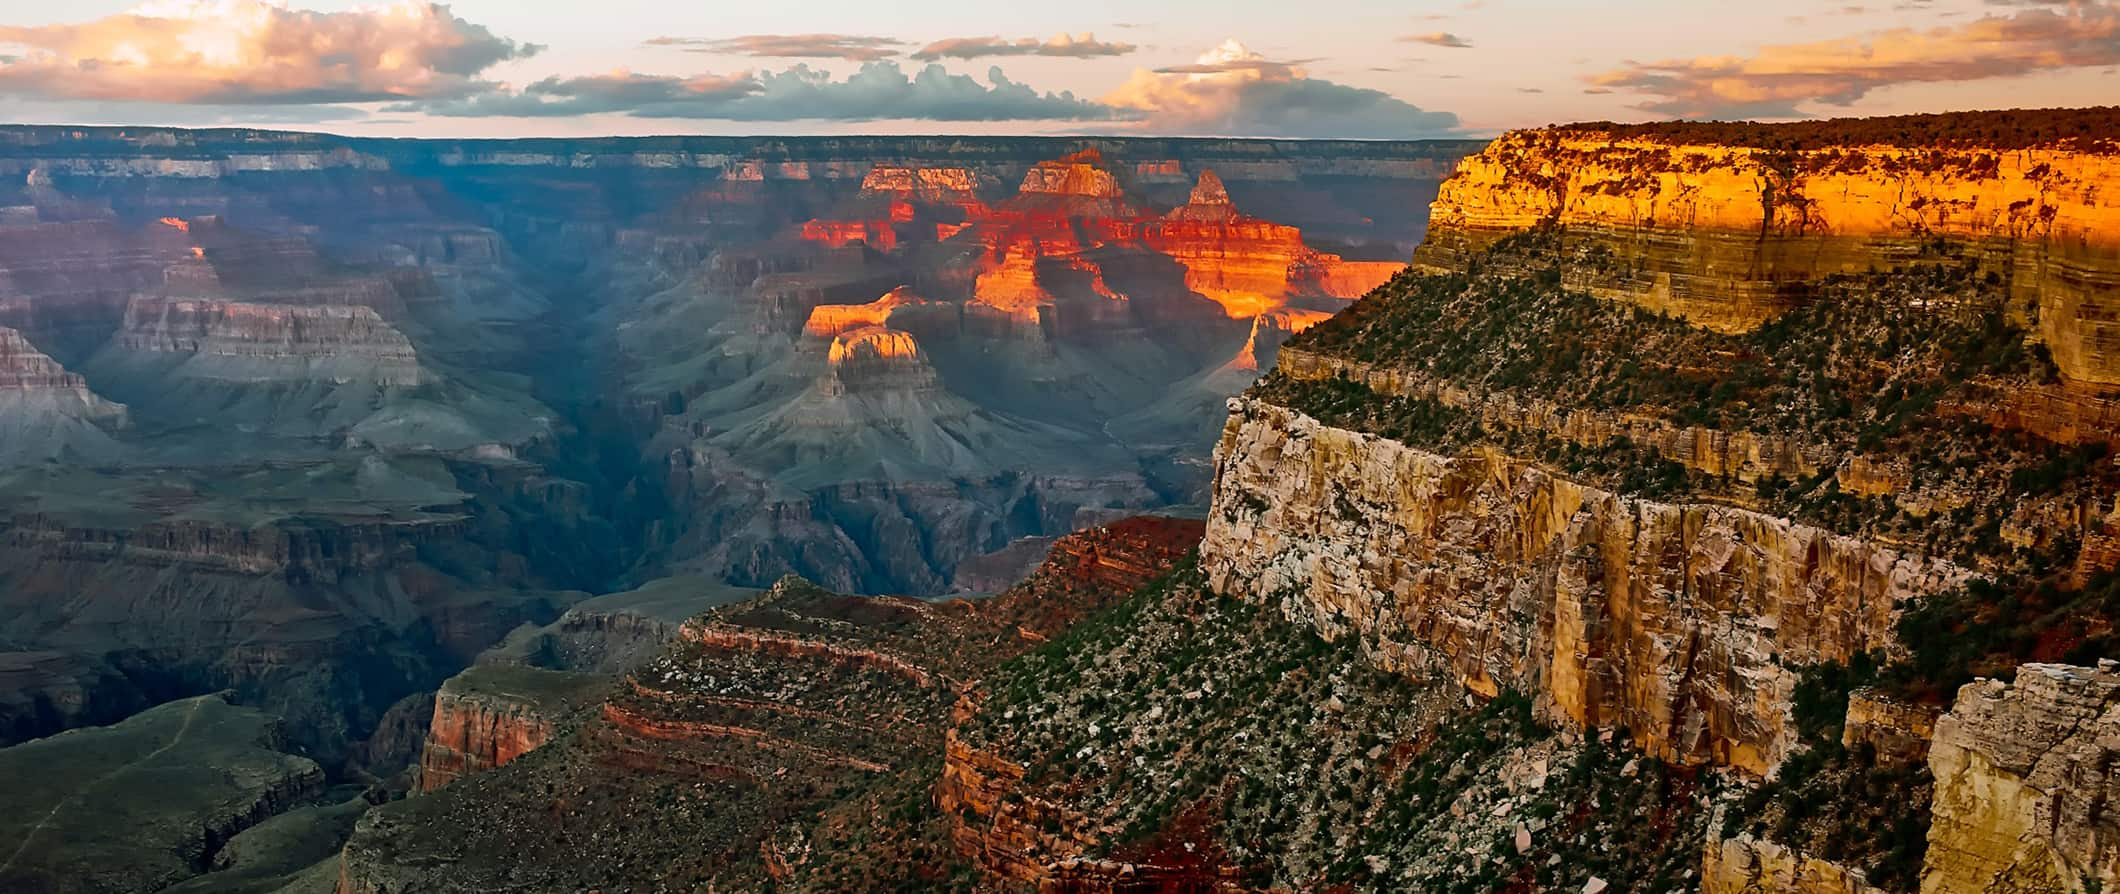 sunset over the Grand Canyon, United States